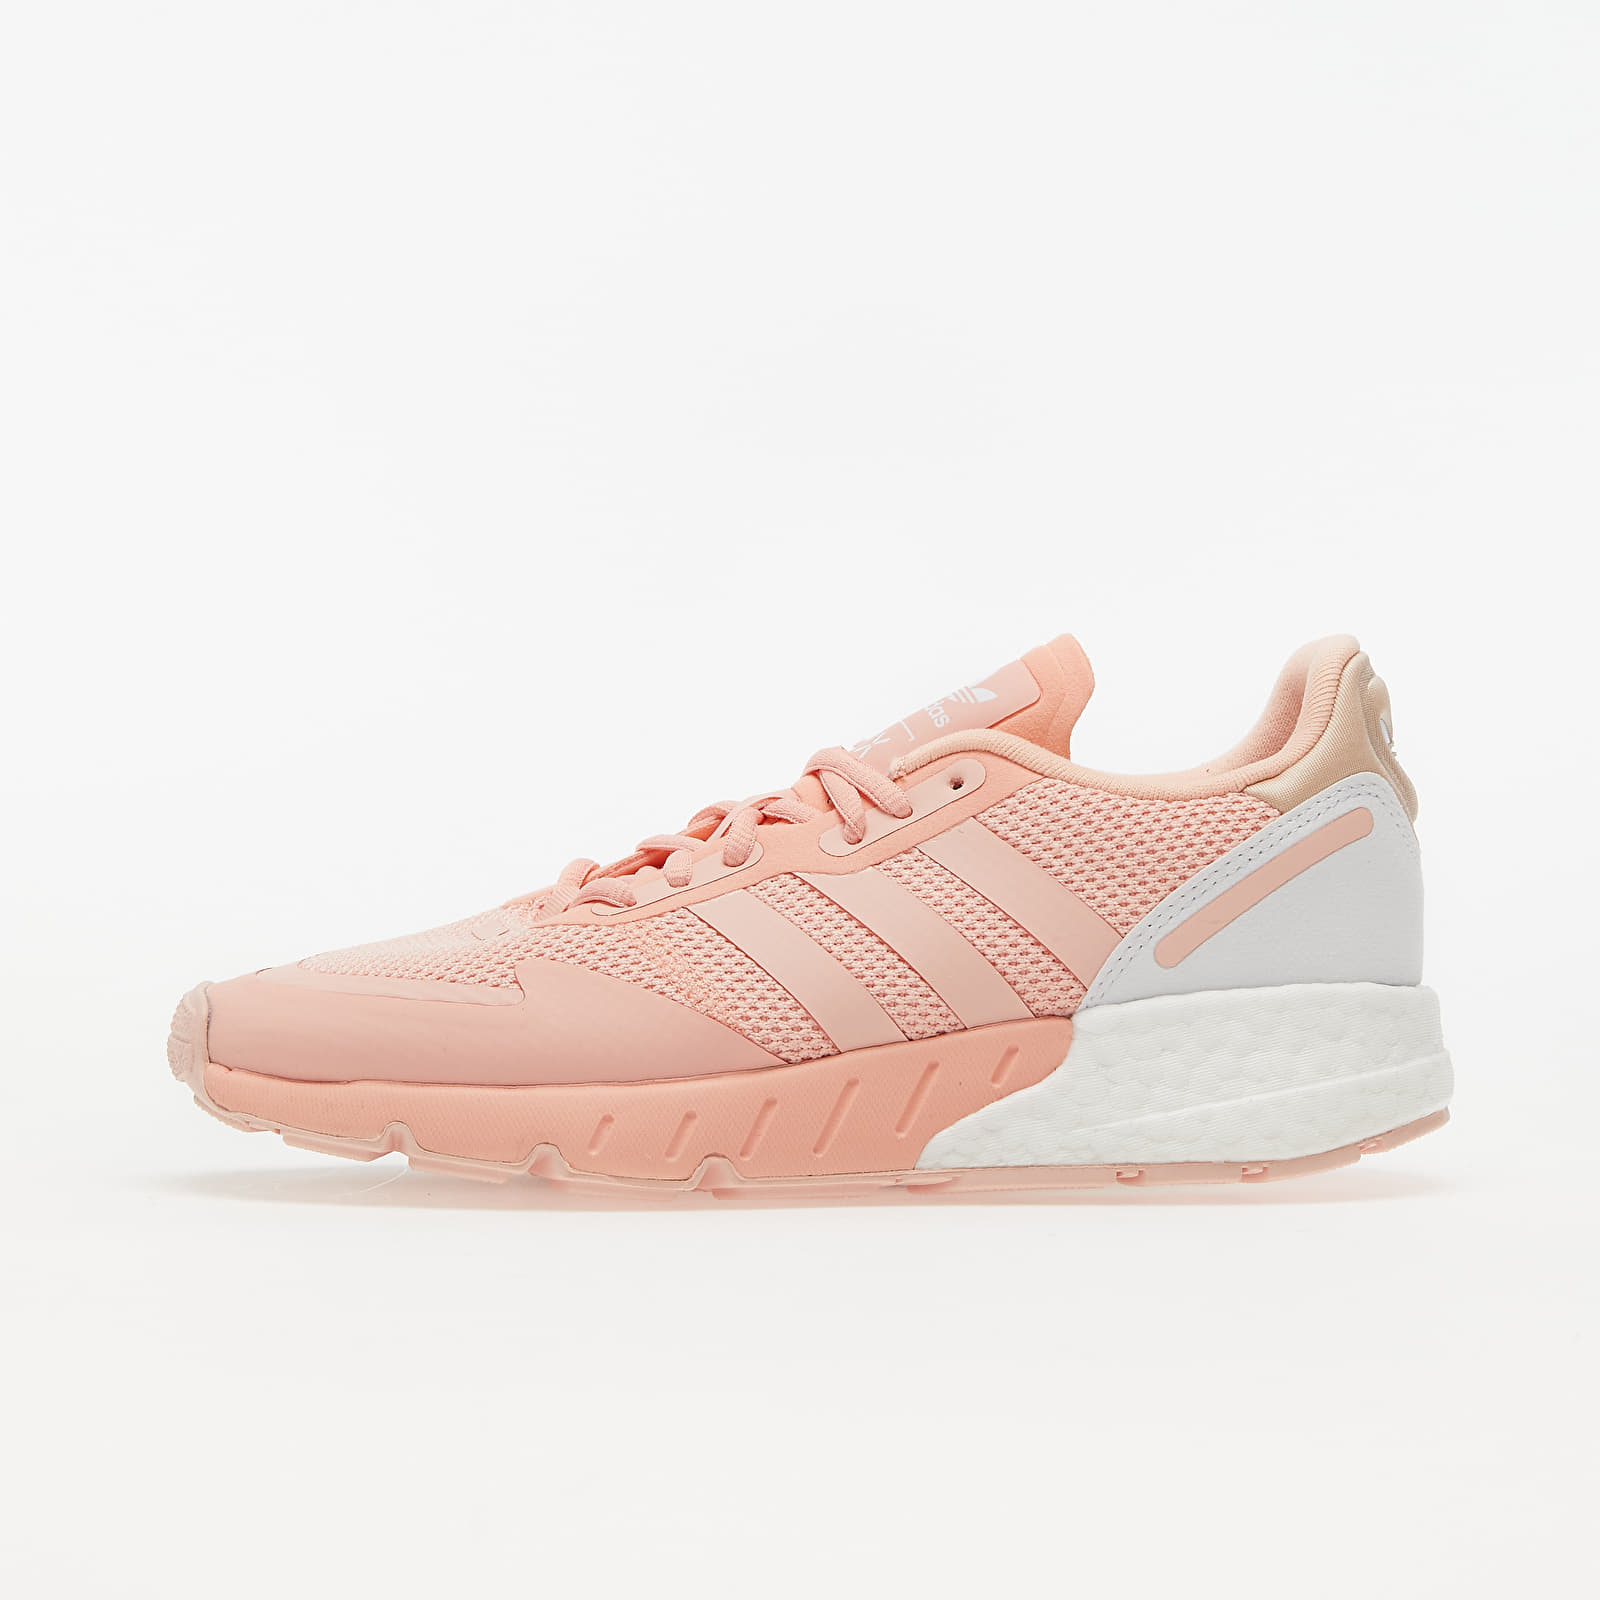 adidas ZX 1K Boost W Glow Pink/ Vapour Pink/ Ftw White EUR 38